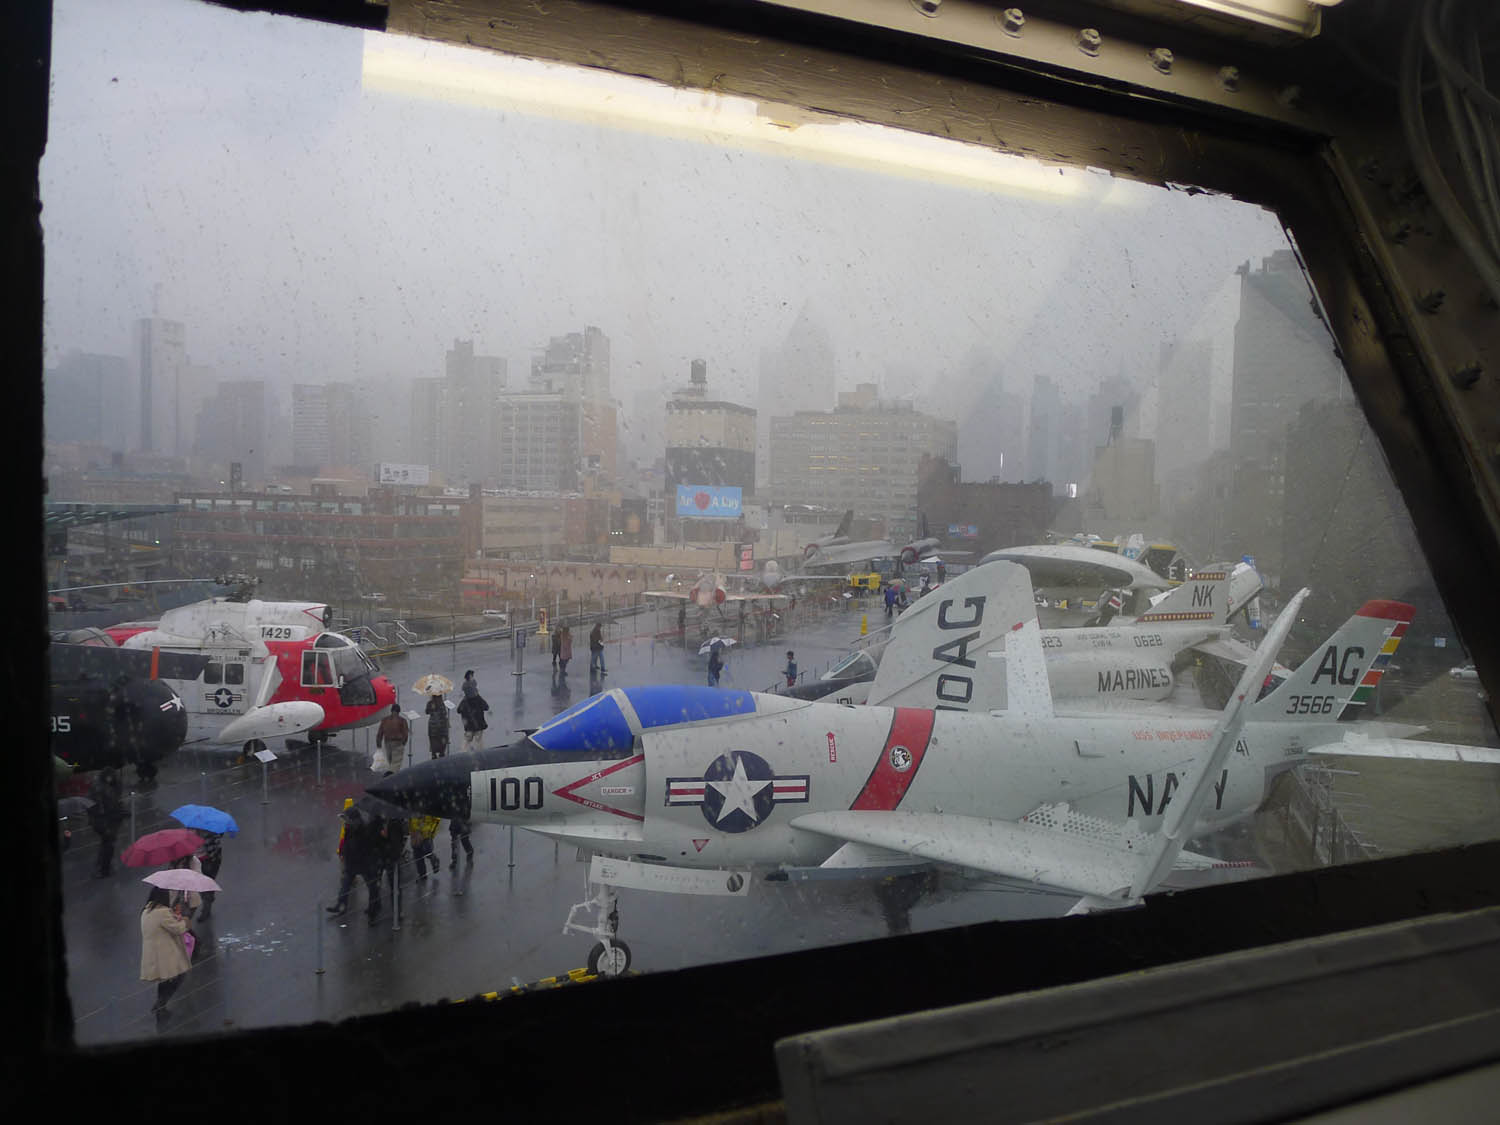 Looking out to the aircraft deck